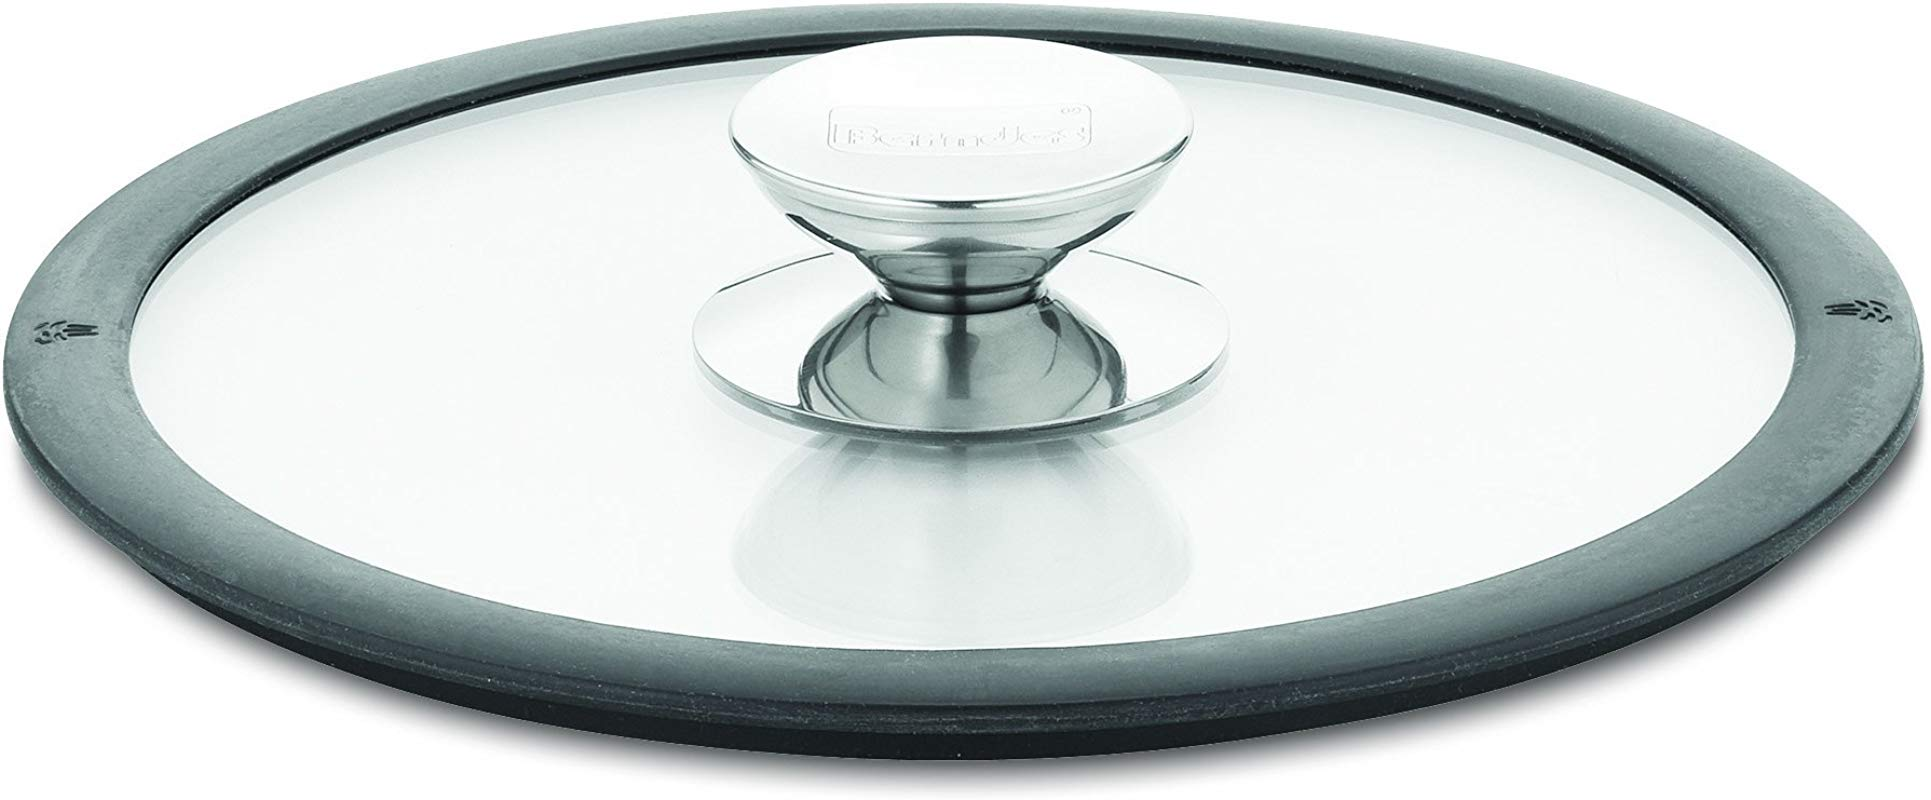 Berndes 007588 11 5 Inch Glass Lid With Black Silicon Rim